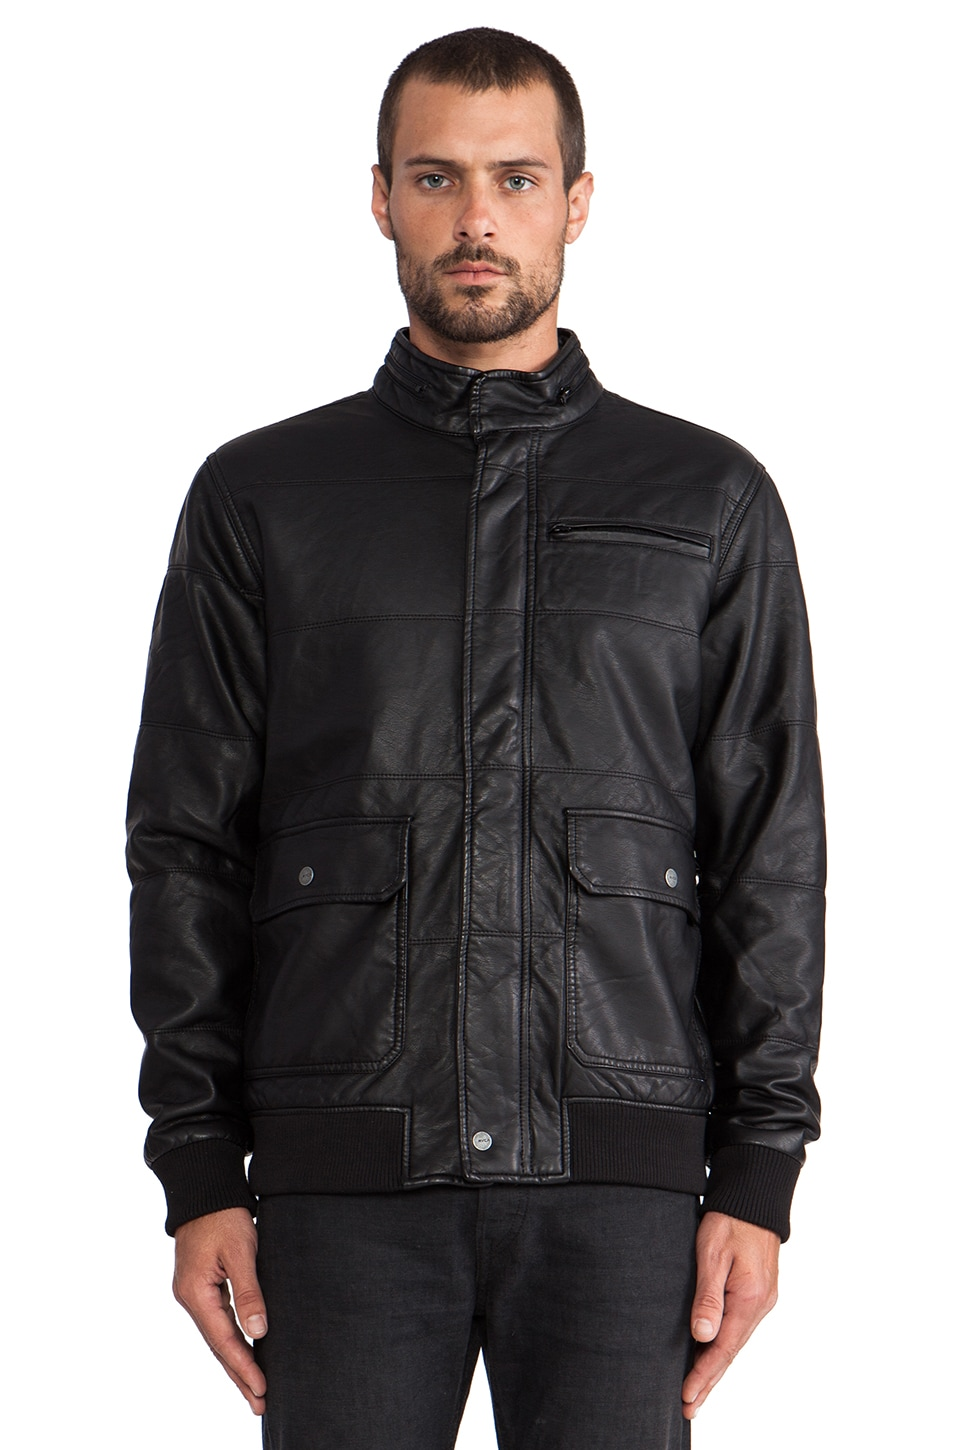 RVCA Vimy Jacket in Black